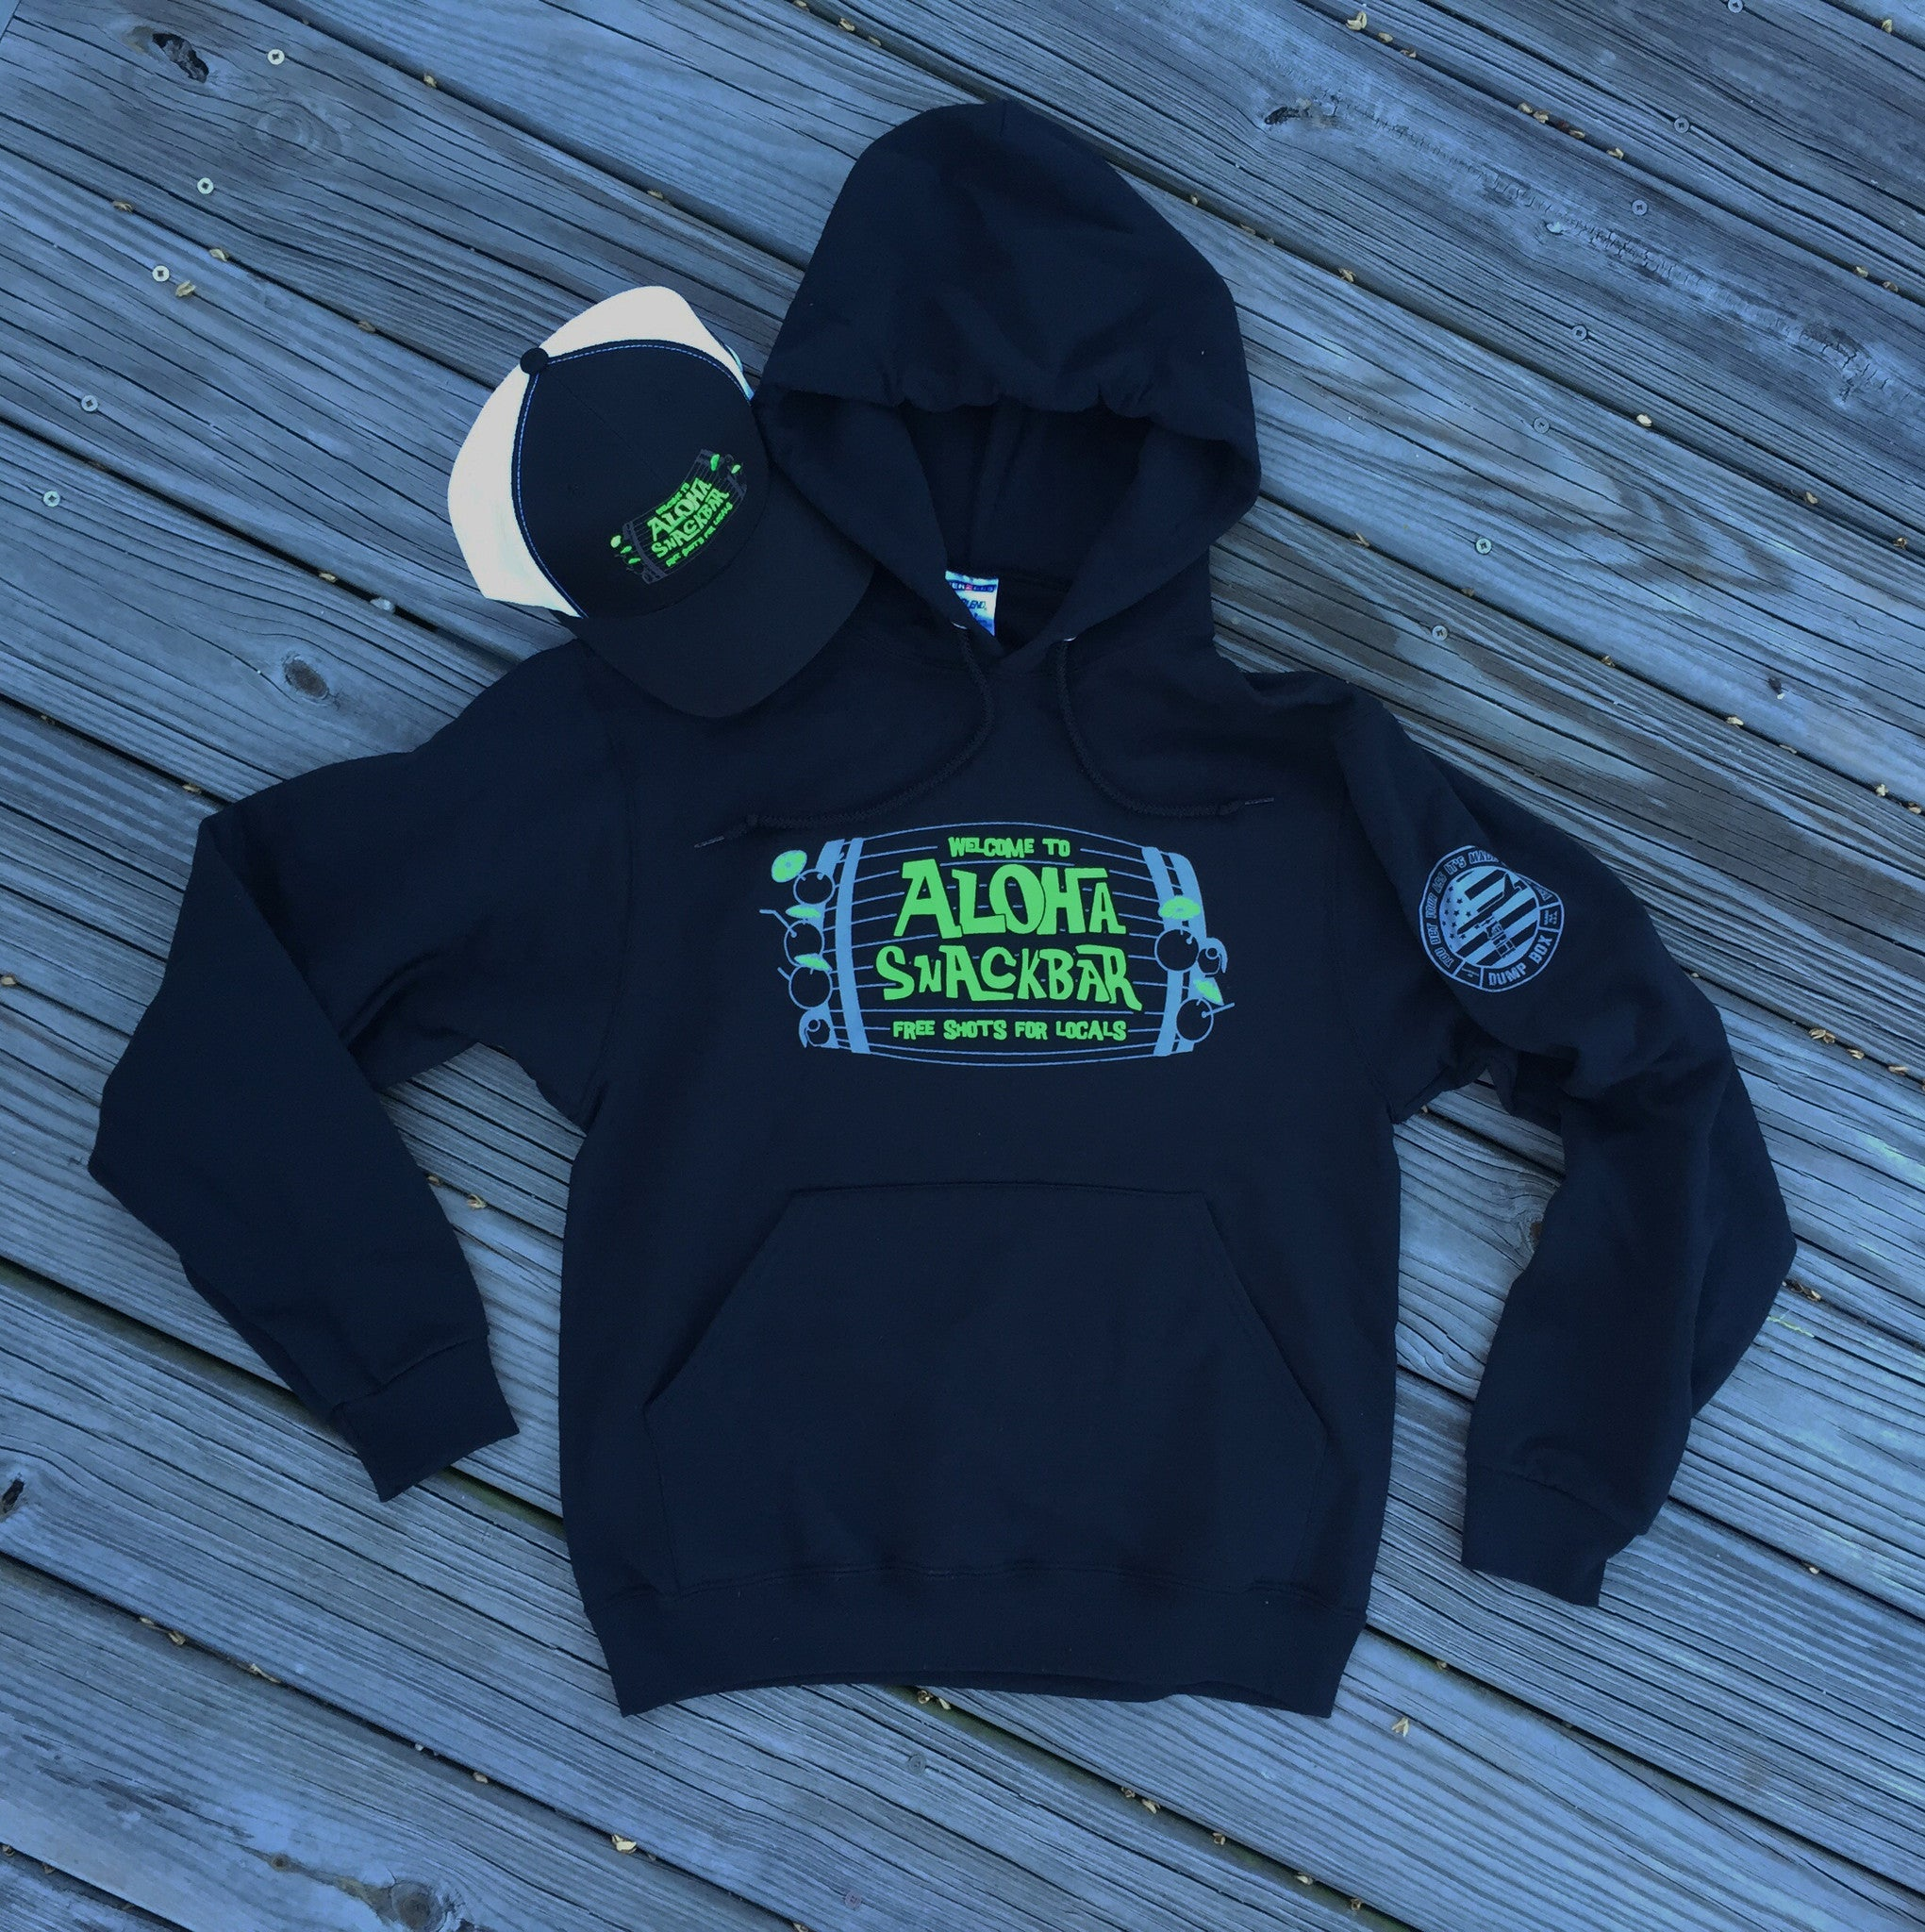 WELCOME TO ALOHA SNACKBAR, FREE SHOTS FOR LOCALS HOODIE - BLACK